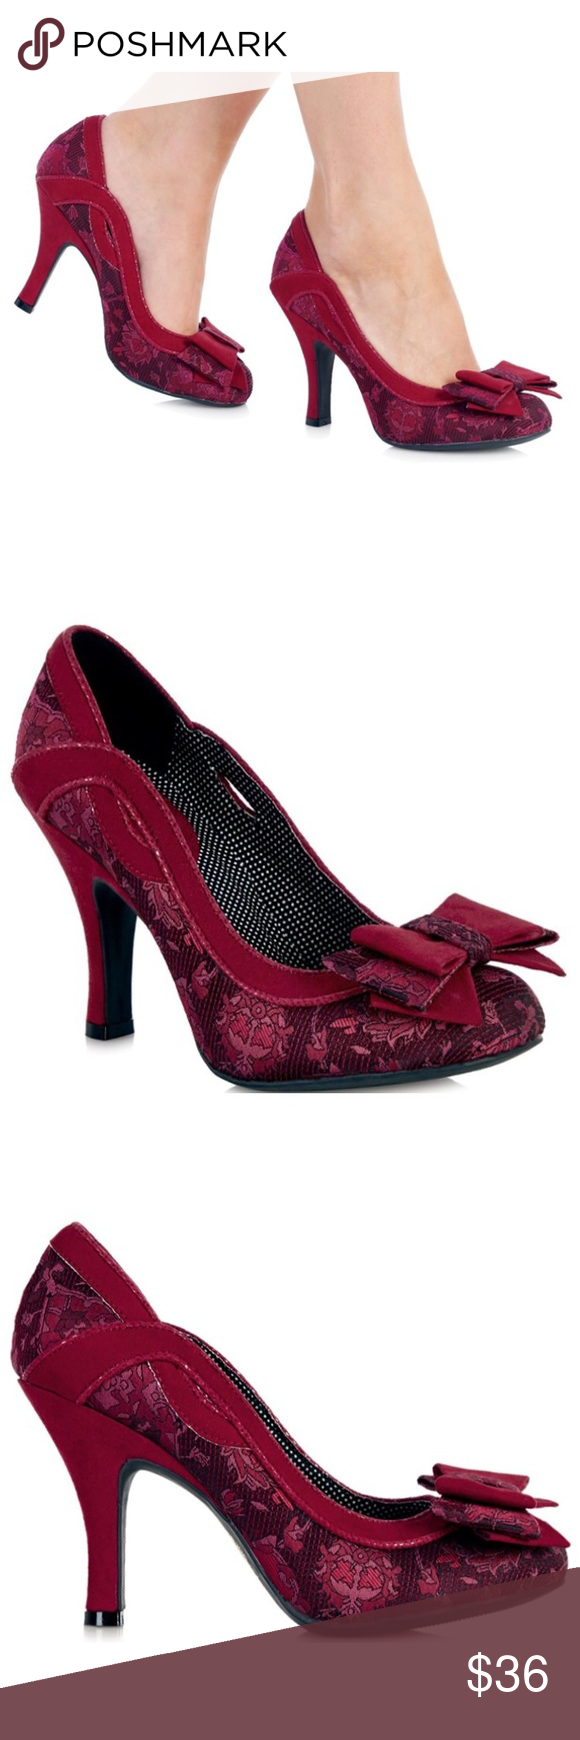 2312cccebb NEW Ruby Shoo Ivy Red Bow Court Heels Such cute and well-made heels!  Perfect for your vintage dresses! Tagged U.K. Size 6, Euro size 39 (see  last pic).